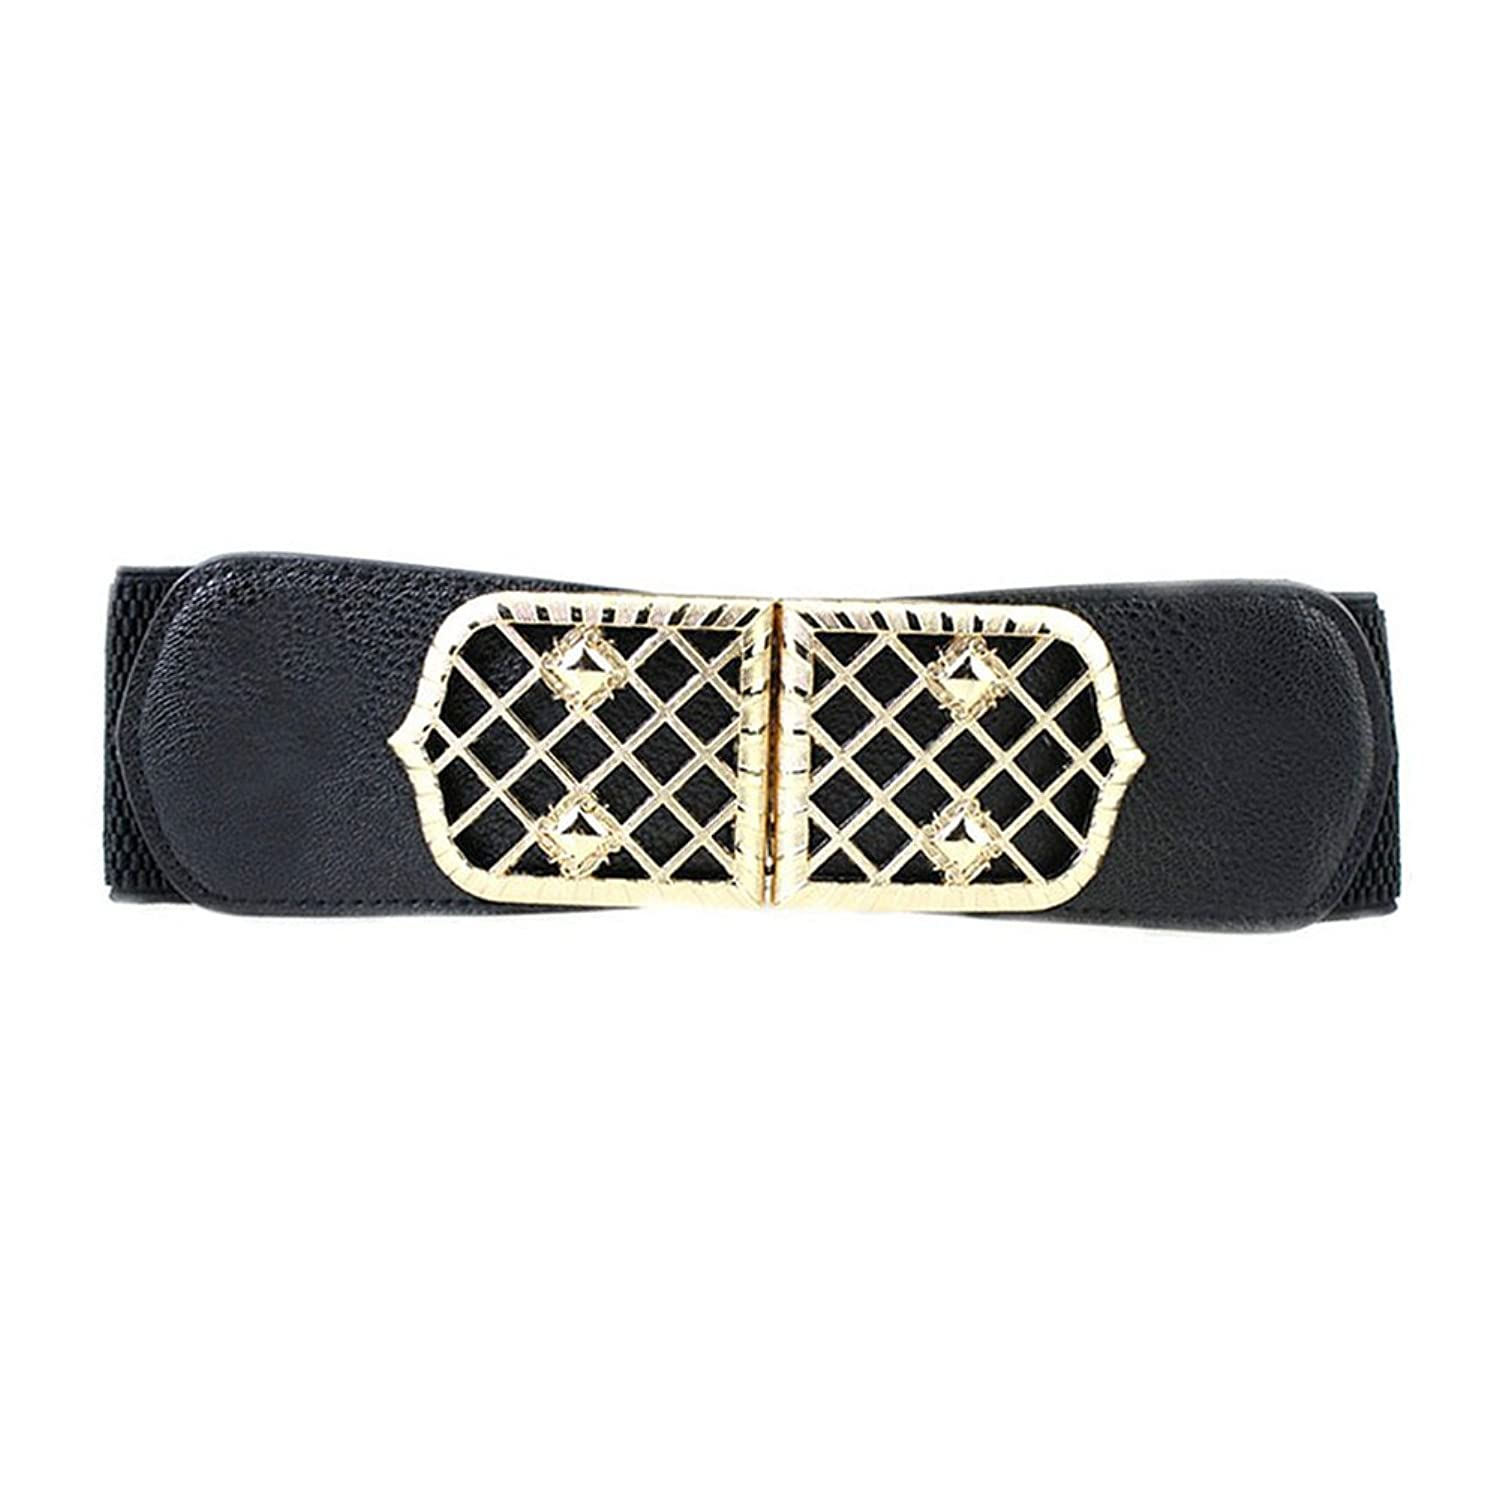 Sitong women's fashion rivets buckle wide elastic girdle